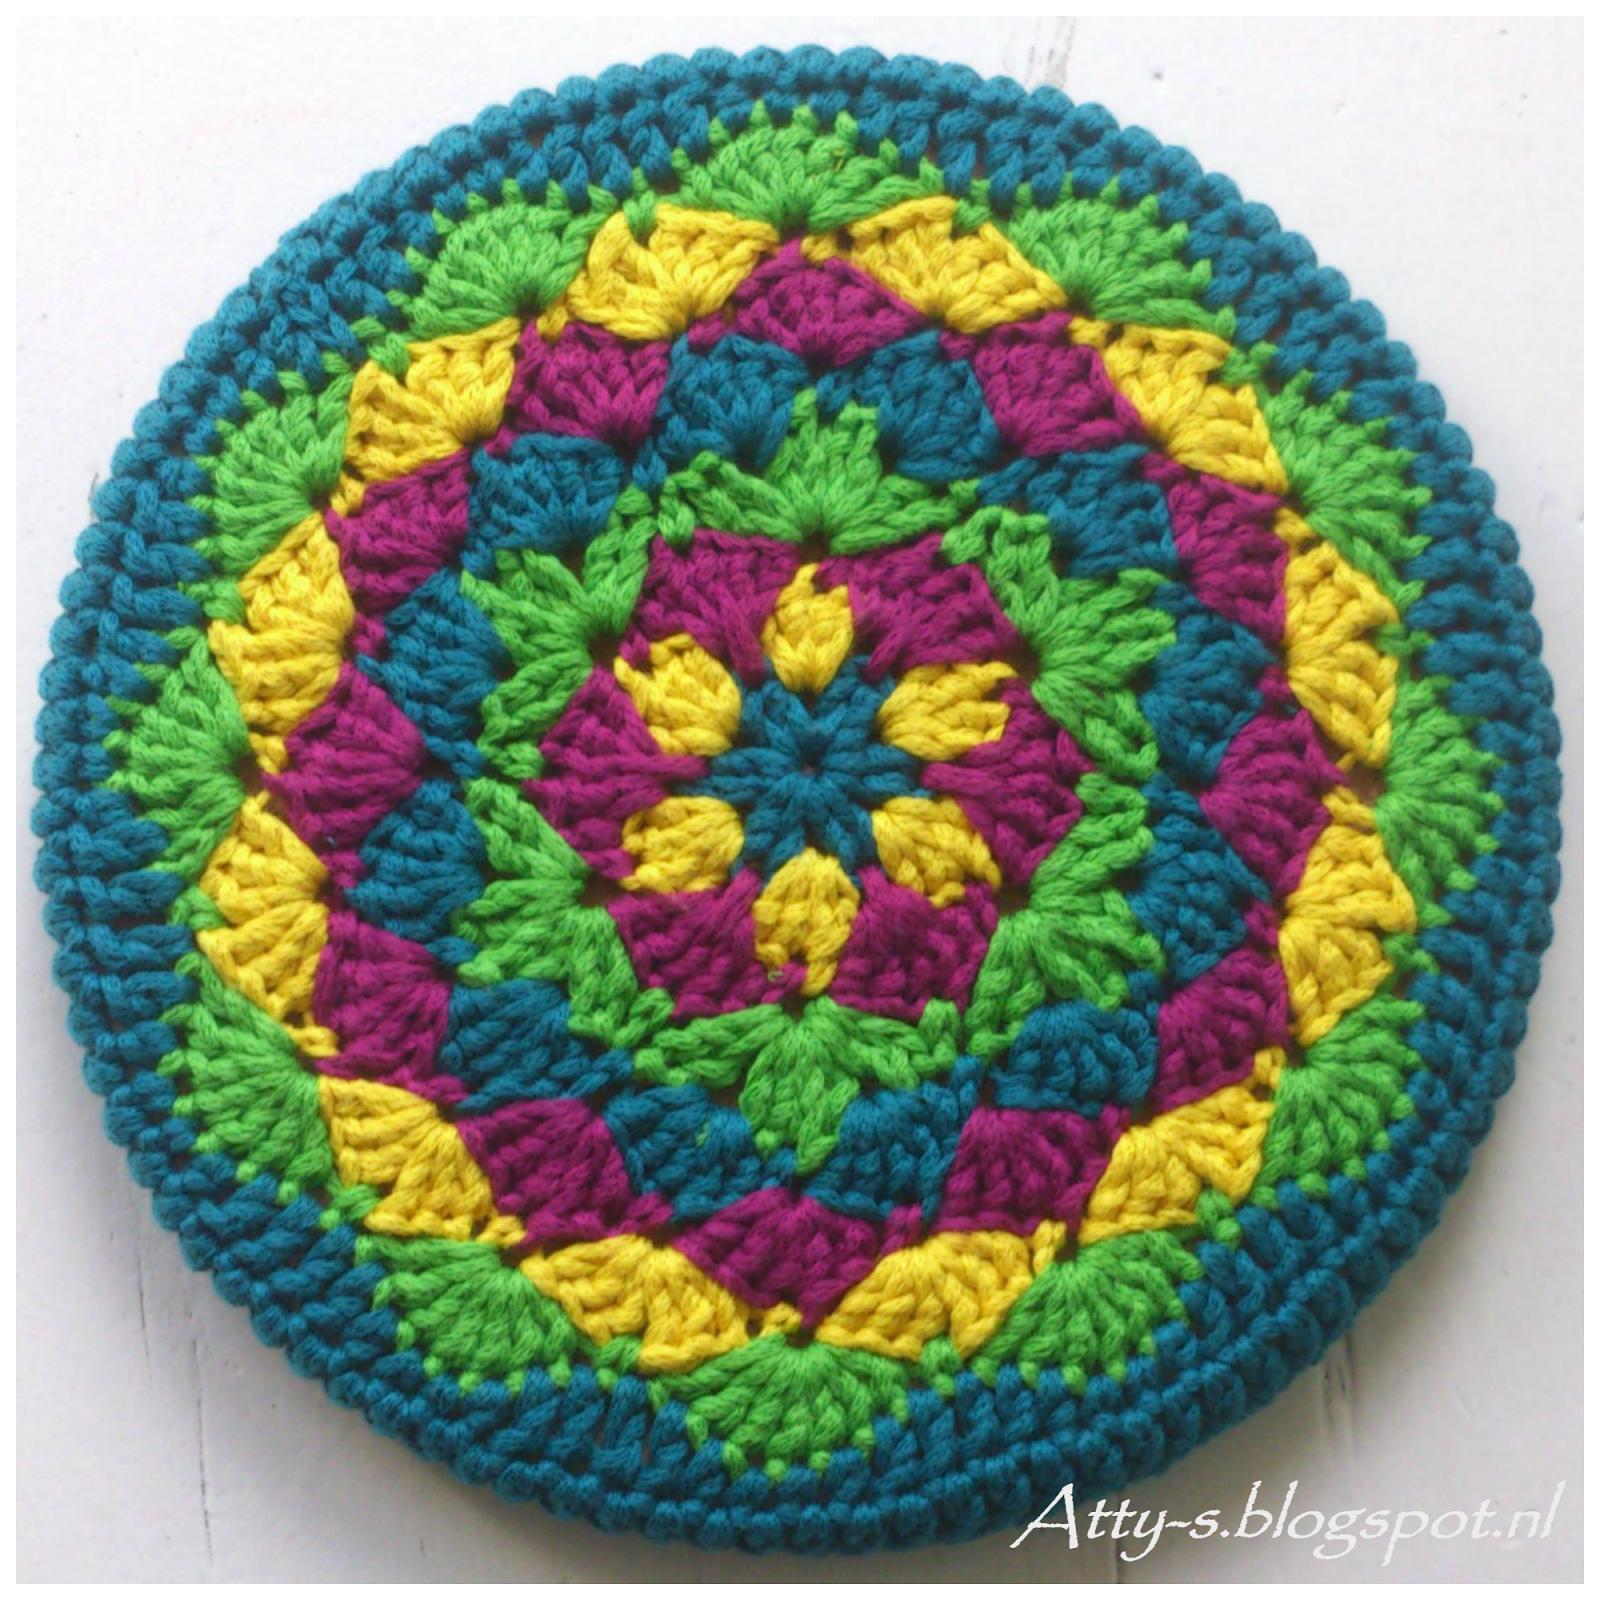 Pin by Melissa Moss on Crochet for the Home | Pinterest | Coasters ...